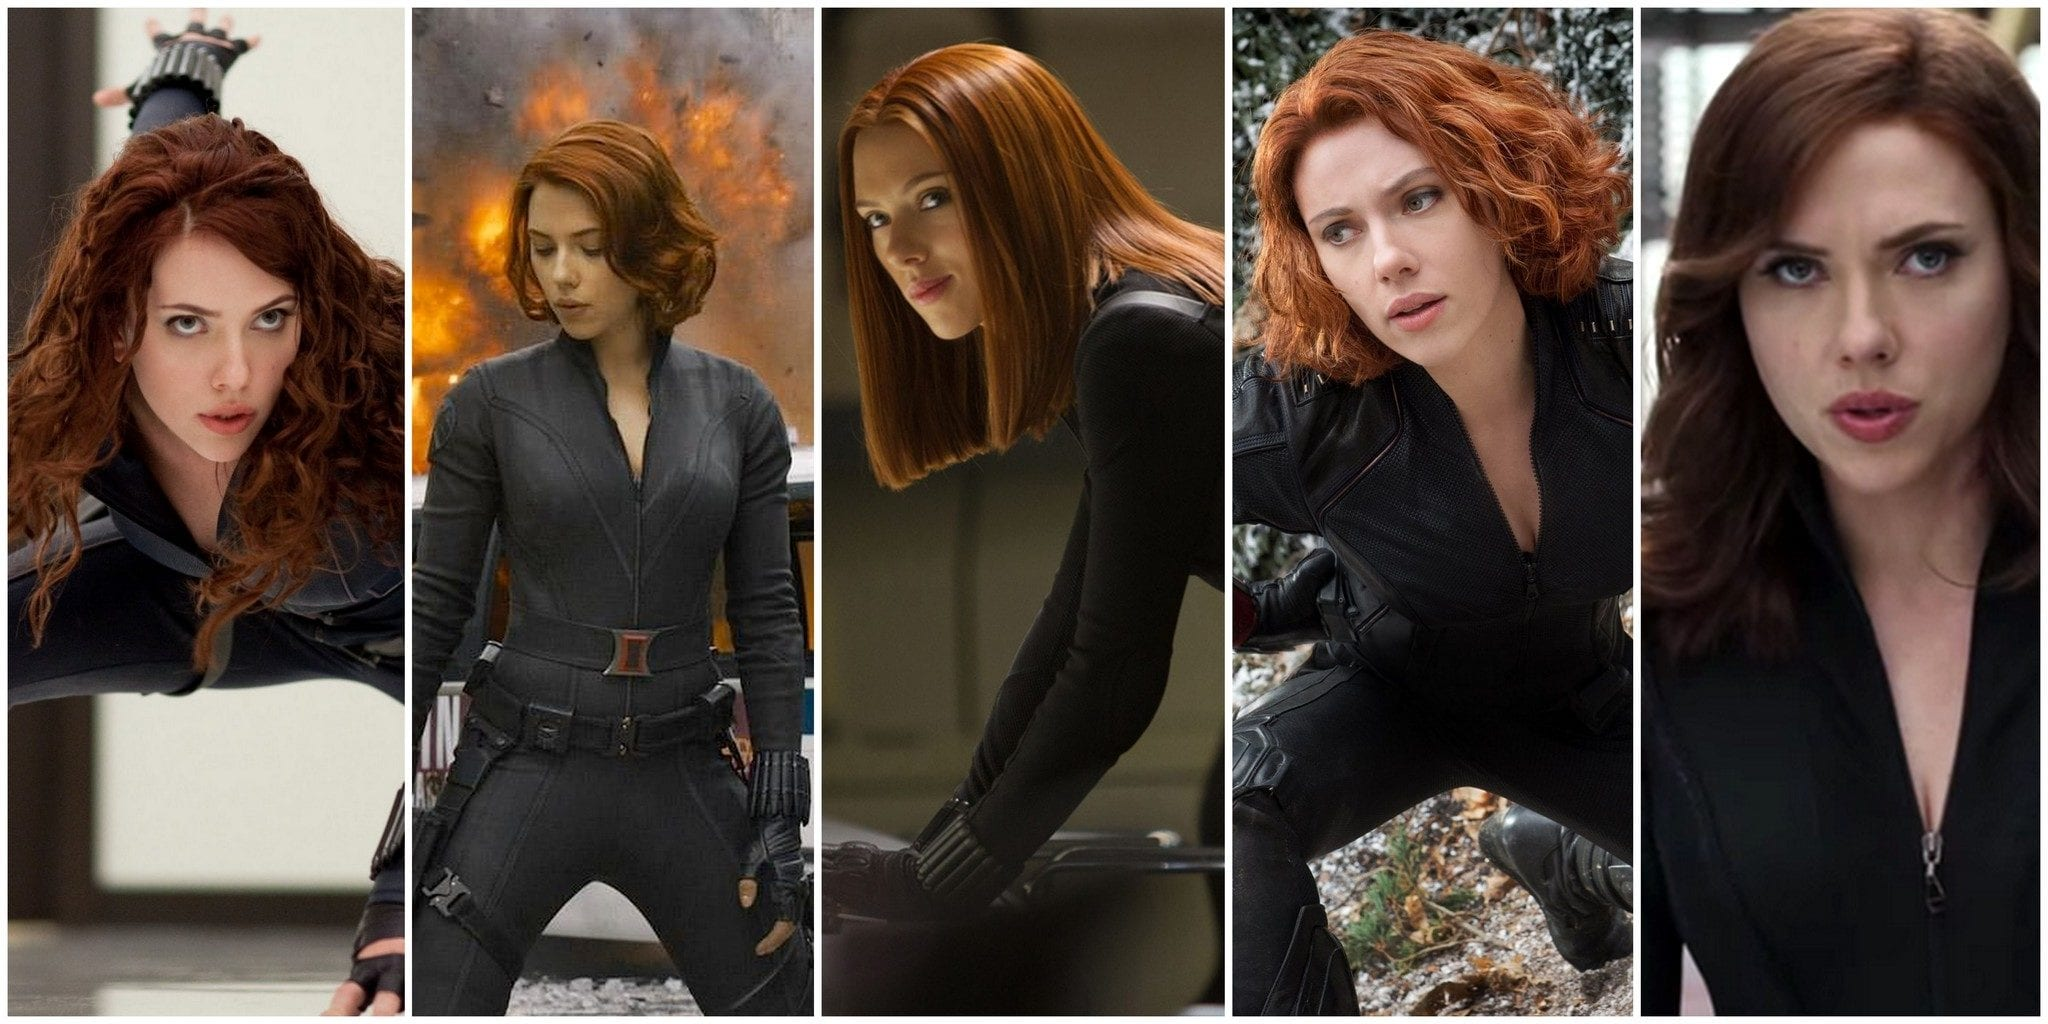 Is Black Widows Hairstyle Sexist